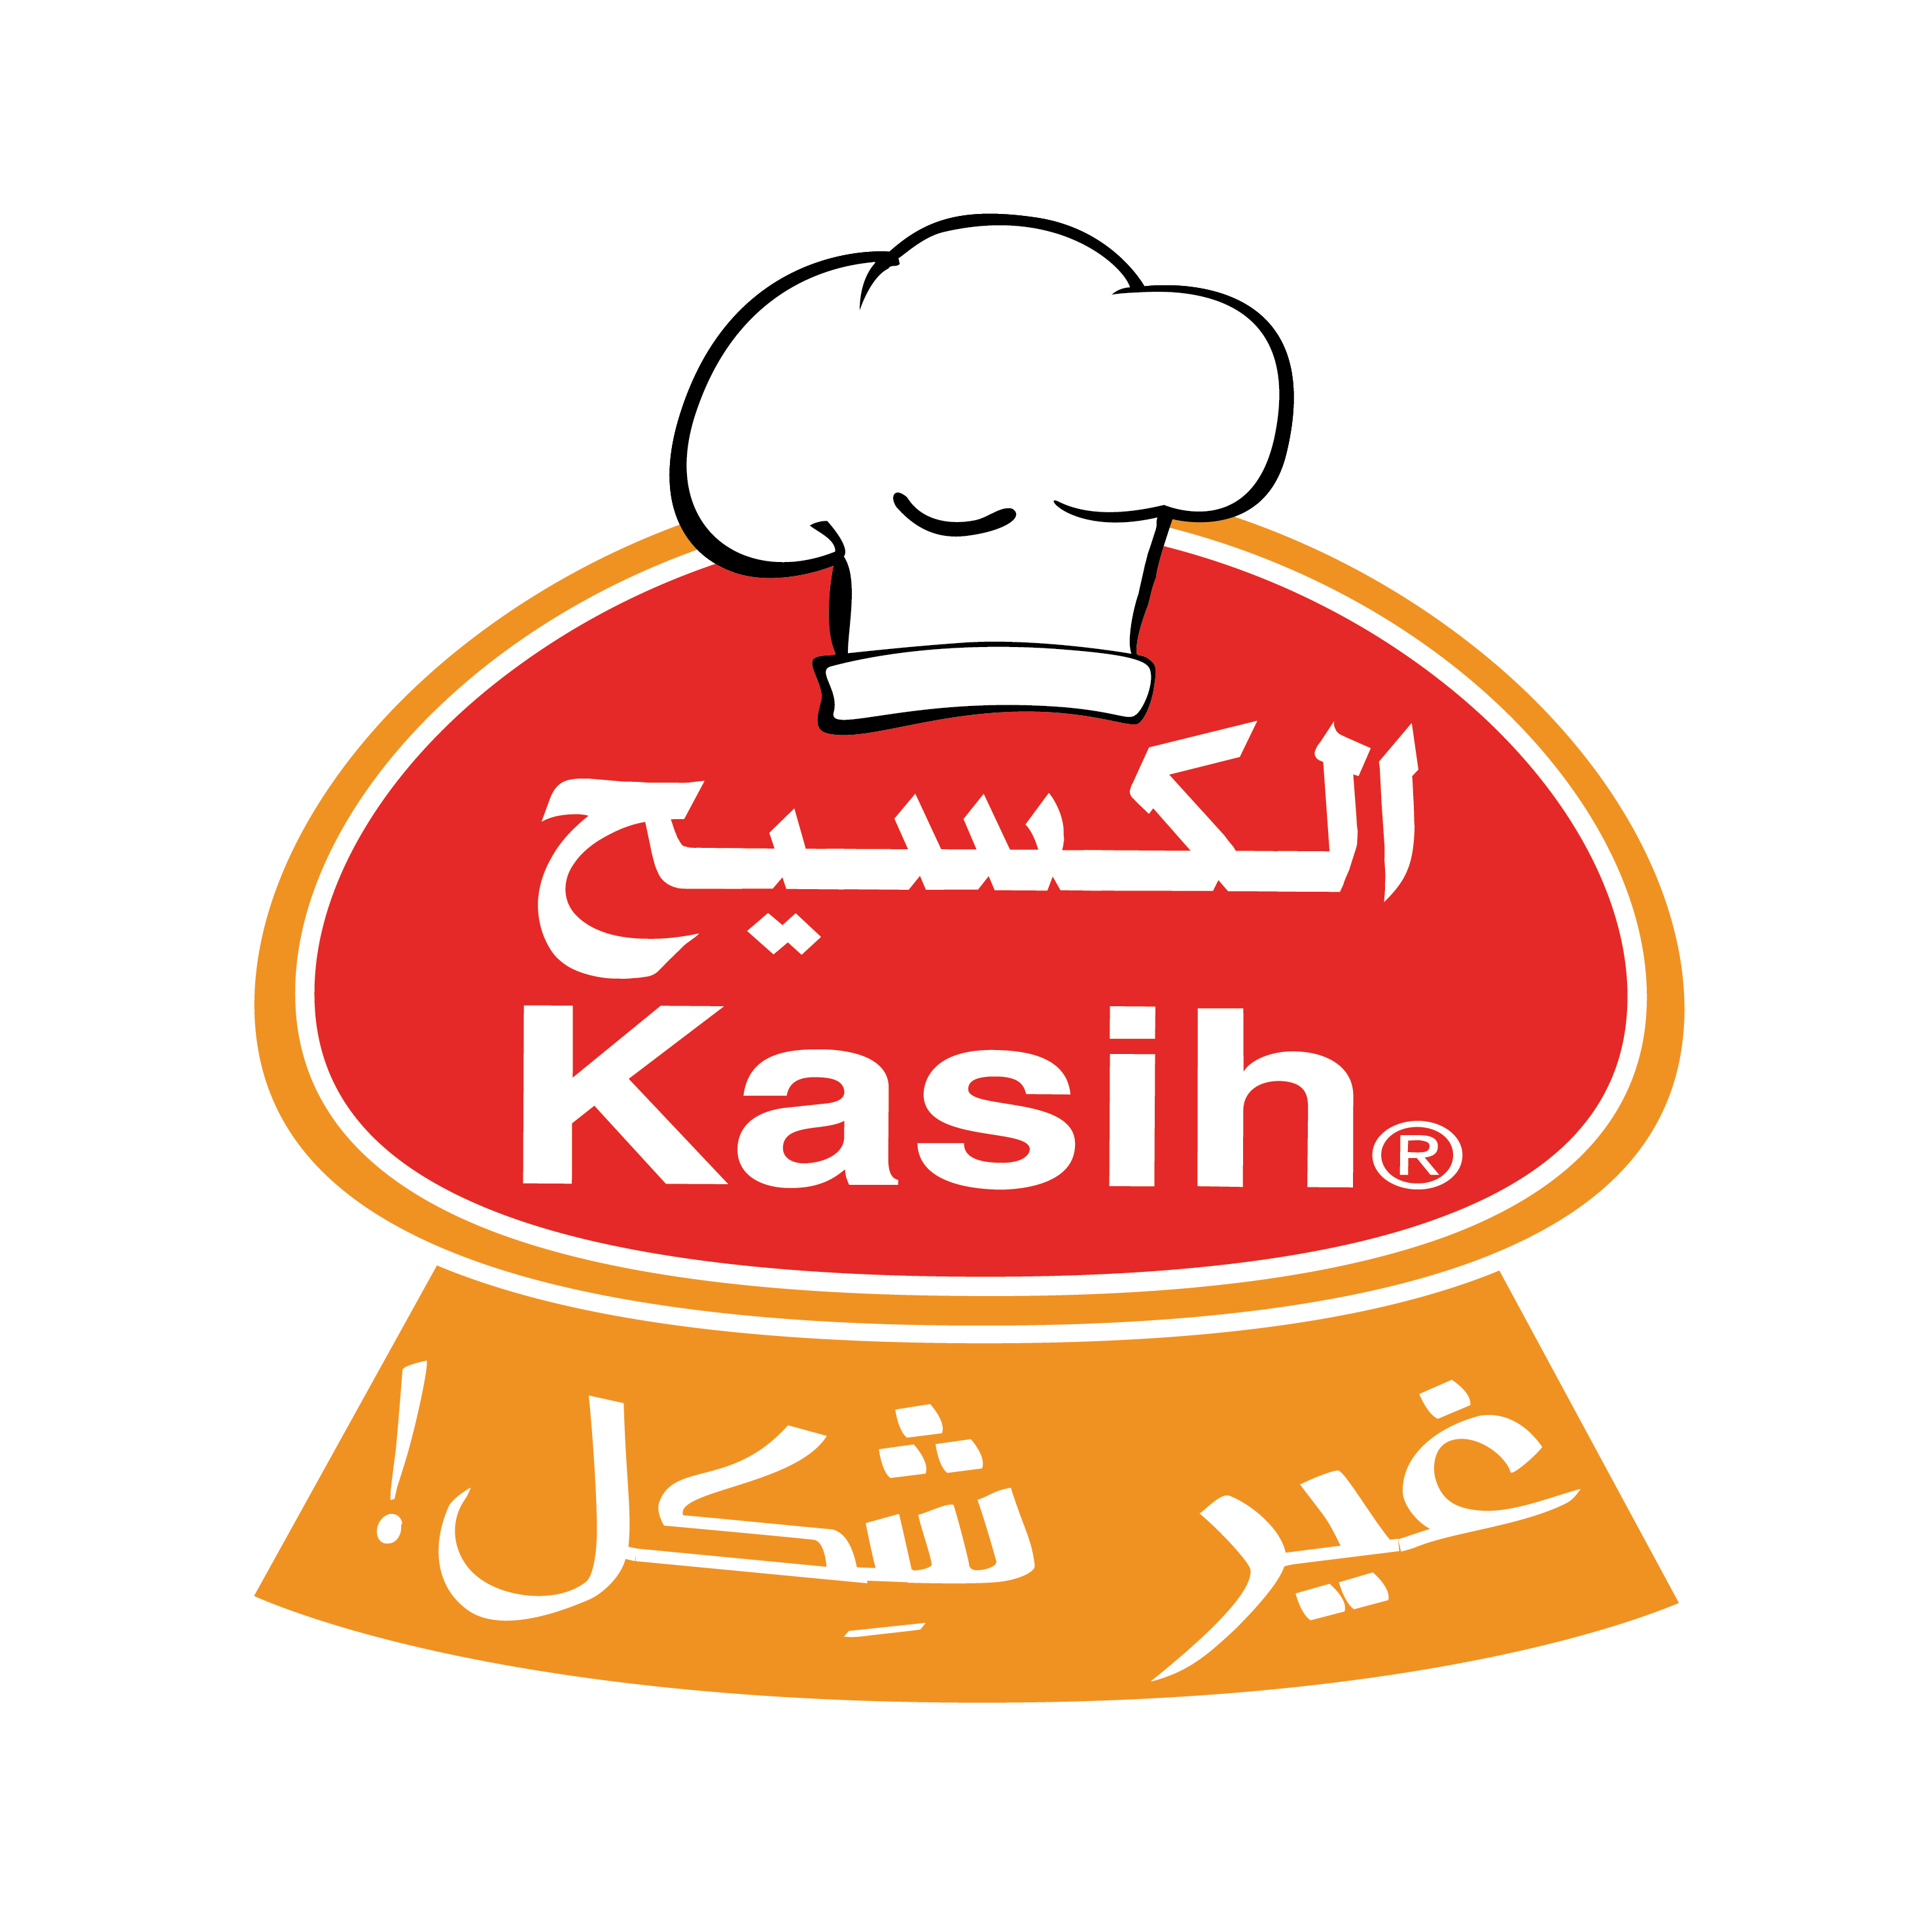 Kasih Food – Kasih Food Production Company